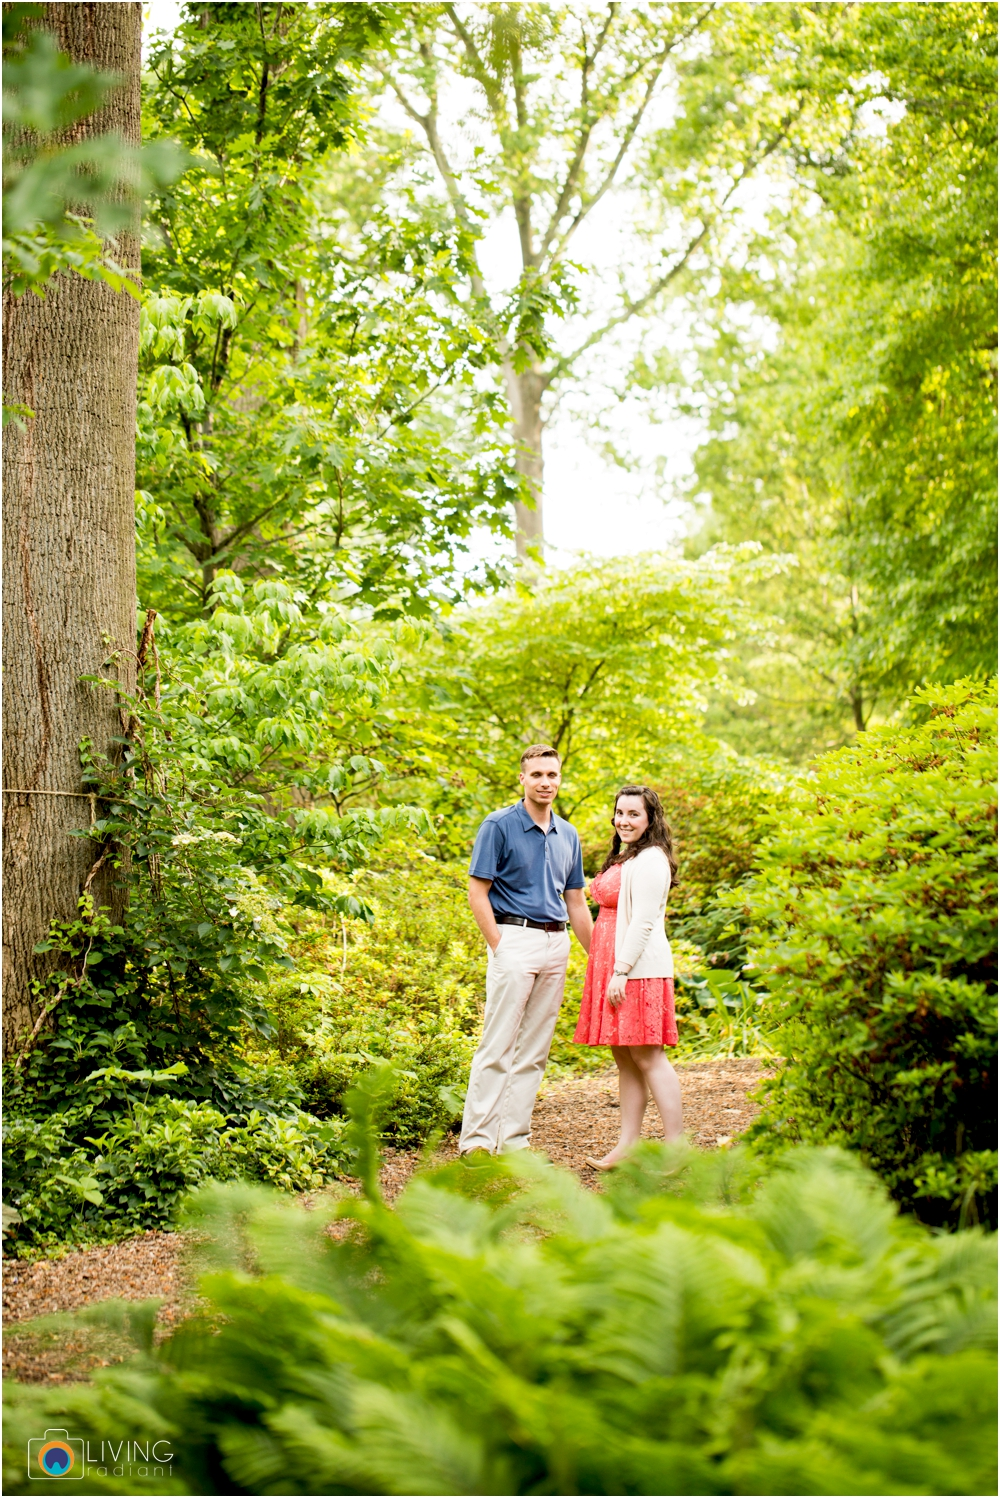 melissa-chris-brookside-gardens-engagement-session-outdoor-gardens-living-radiant-photography-maggie-patrick-nolan_0024.jpg